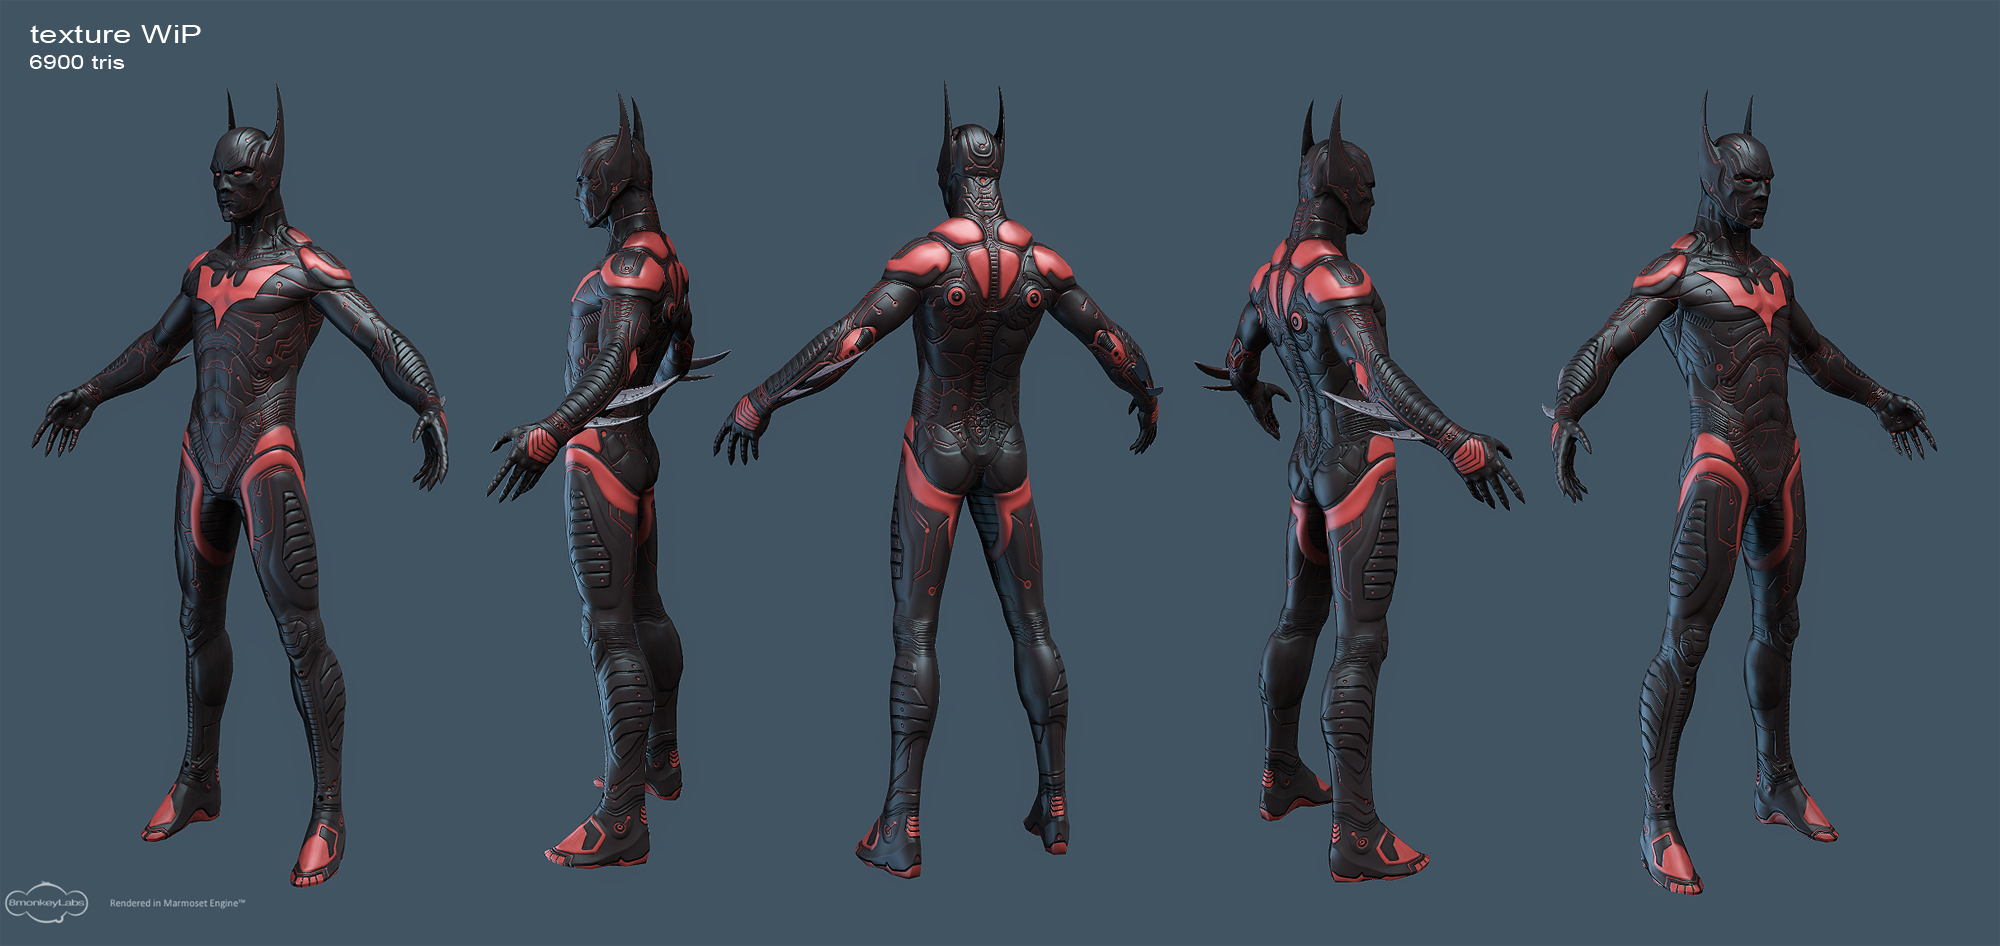 batmanbeyond21320124.jpg